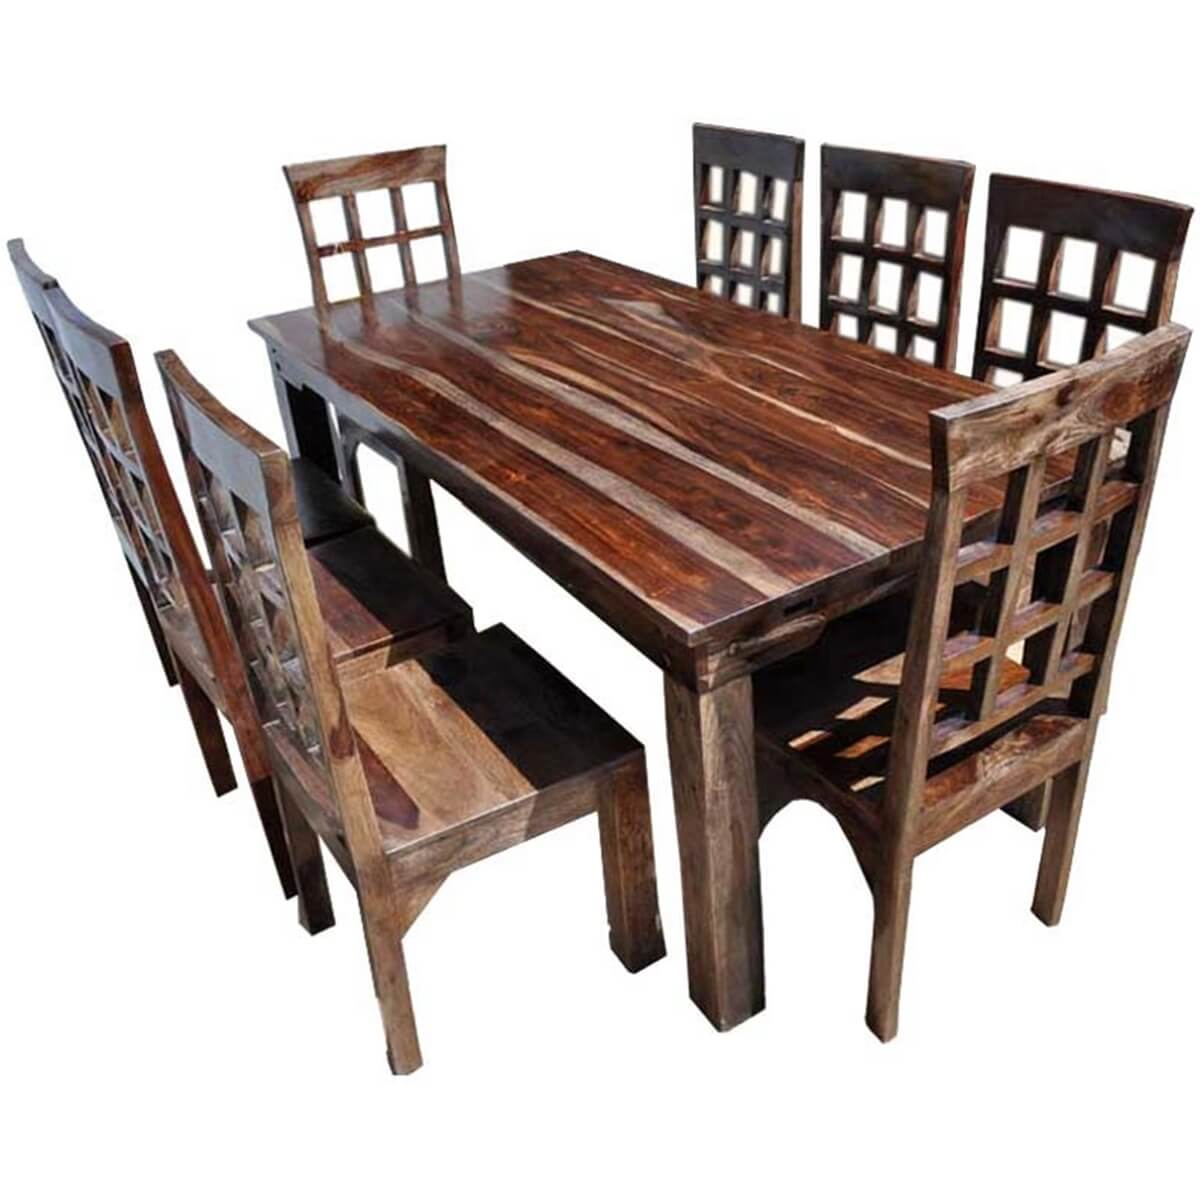 Dining Room Furniture Rustic Portland Rustic Furniture Extendable Dining Room Table